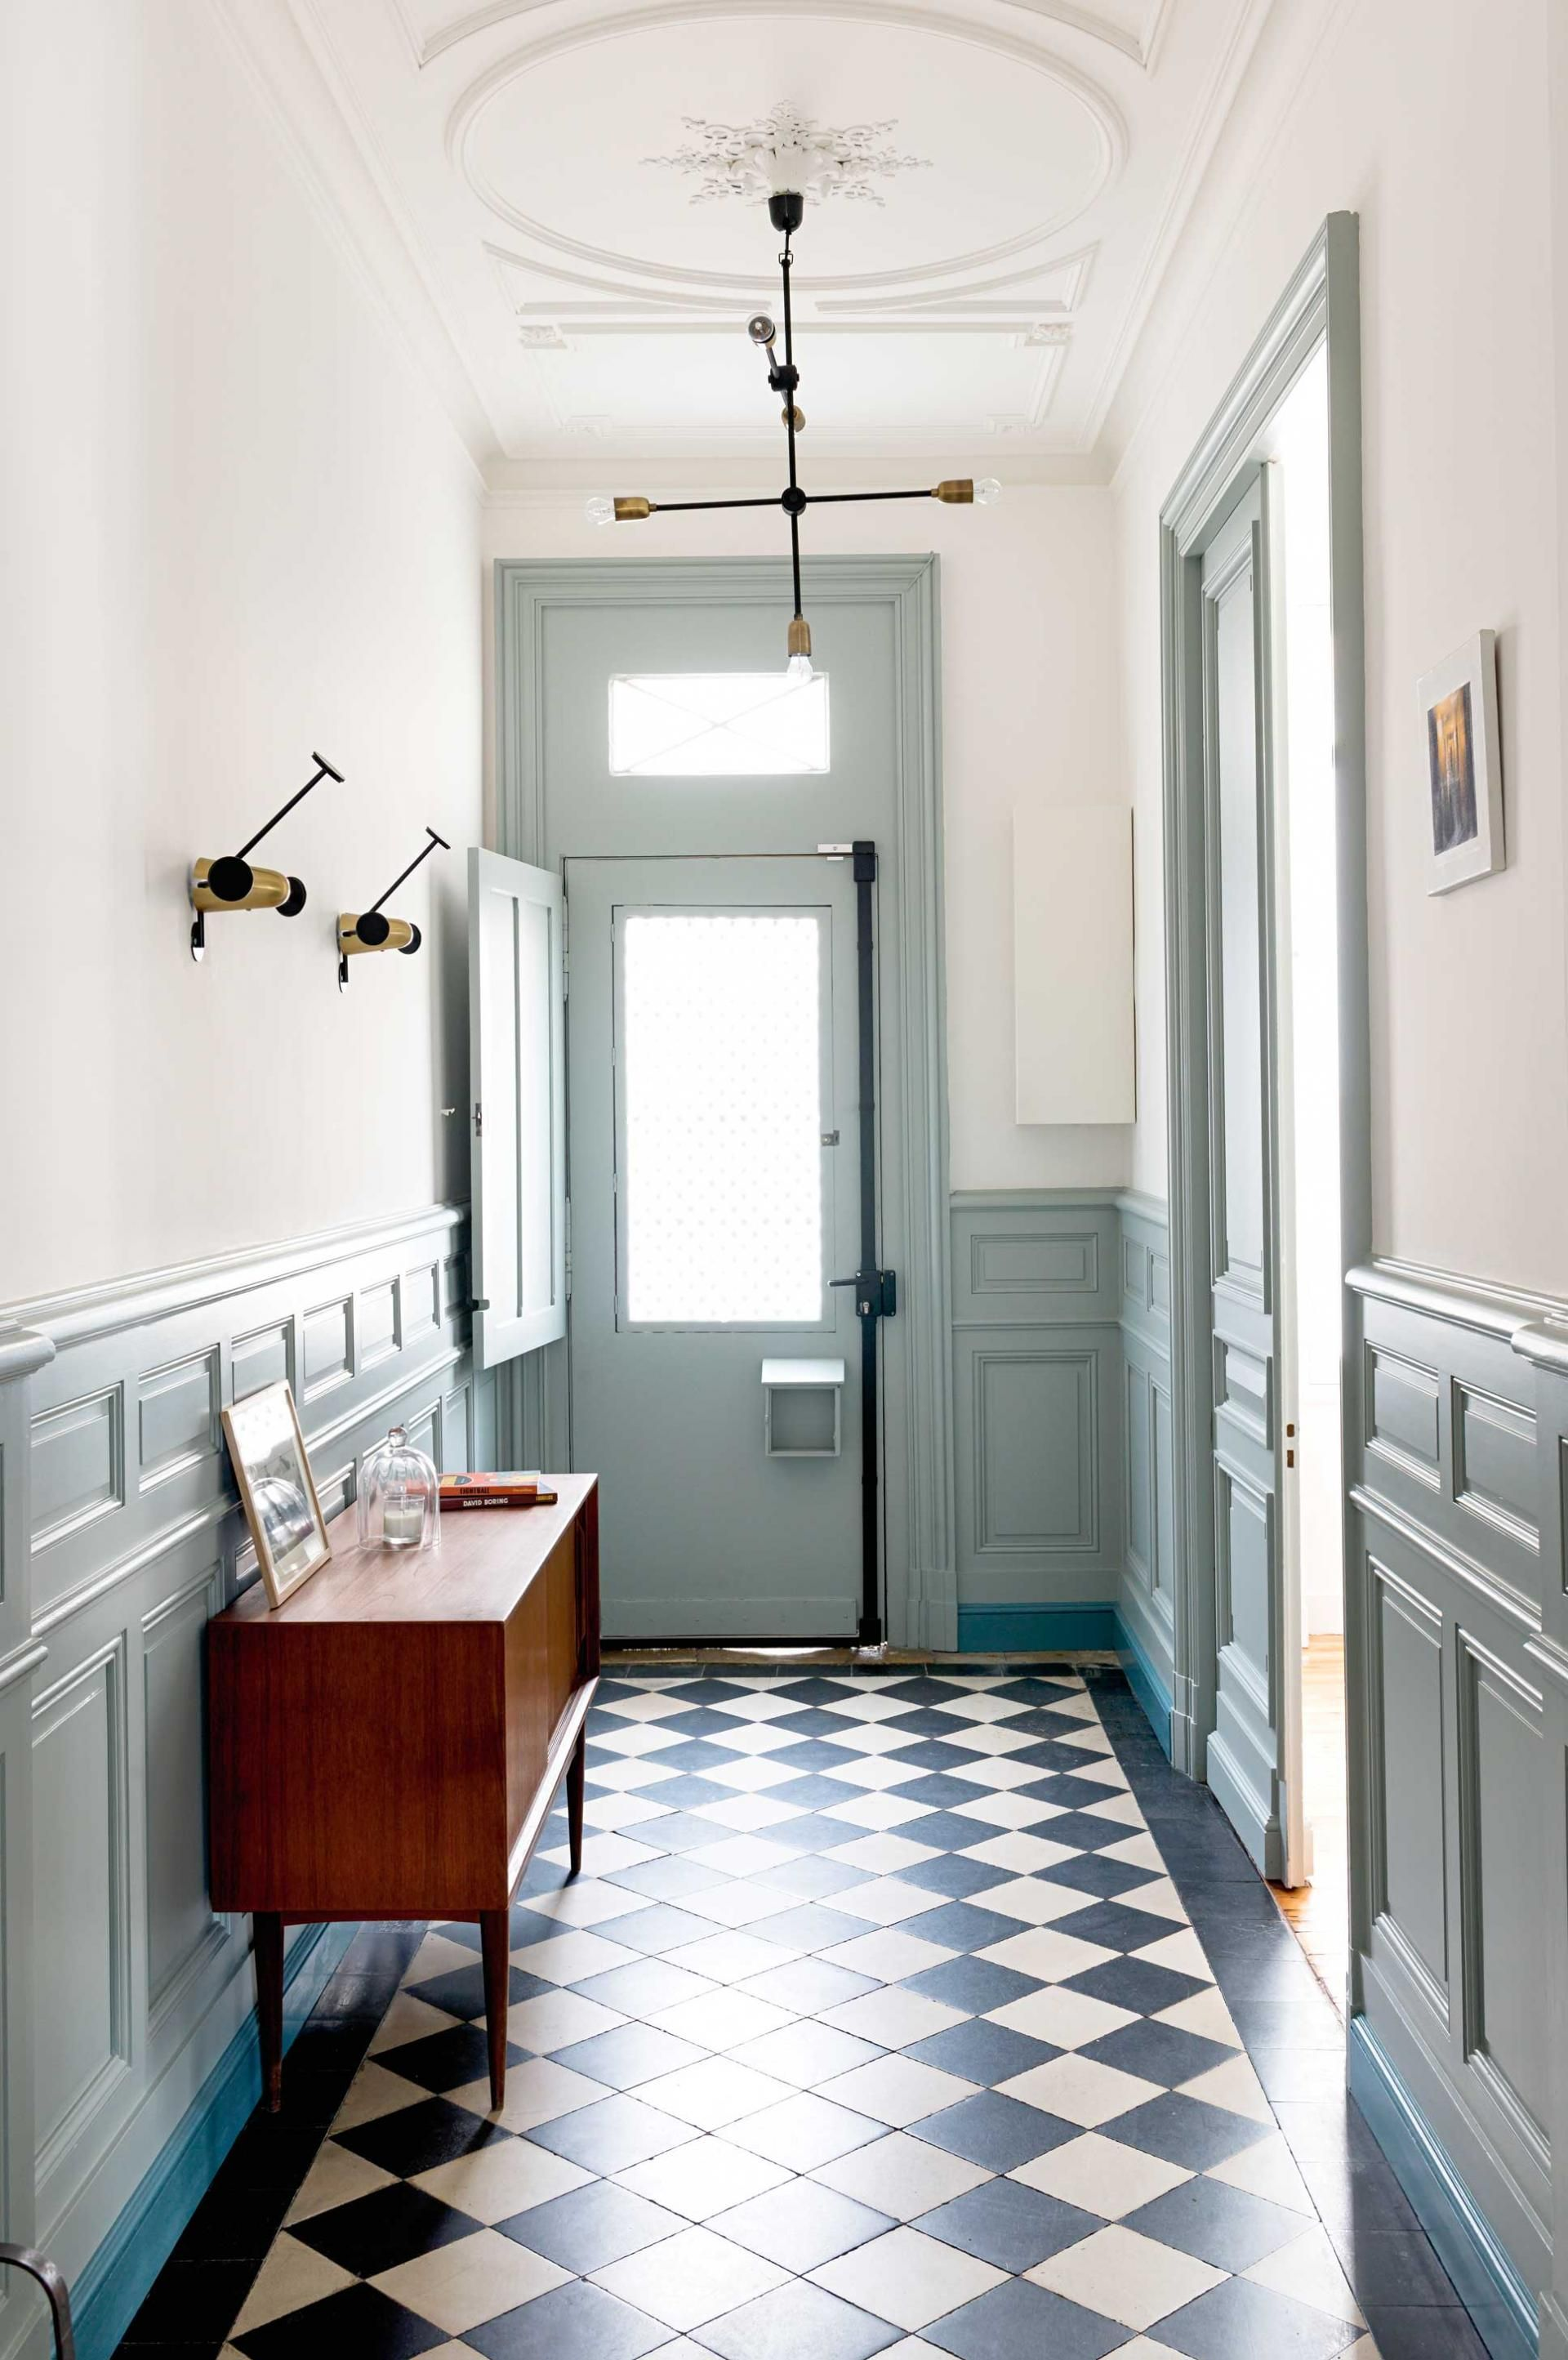 Ideas about hall interior design on pinterest  charming french home with fresh colour from the also rh